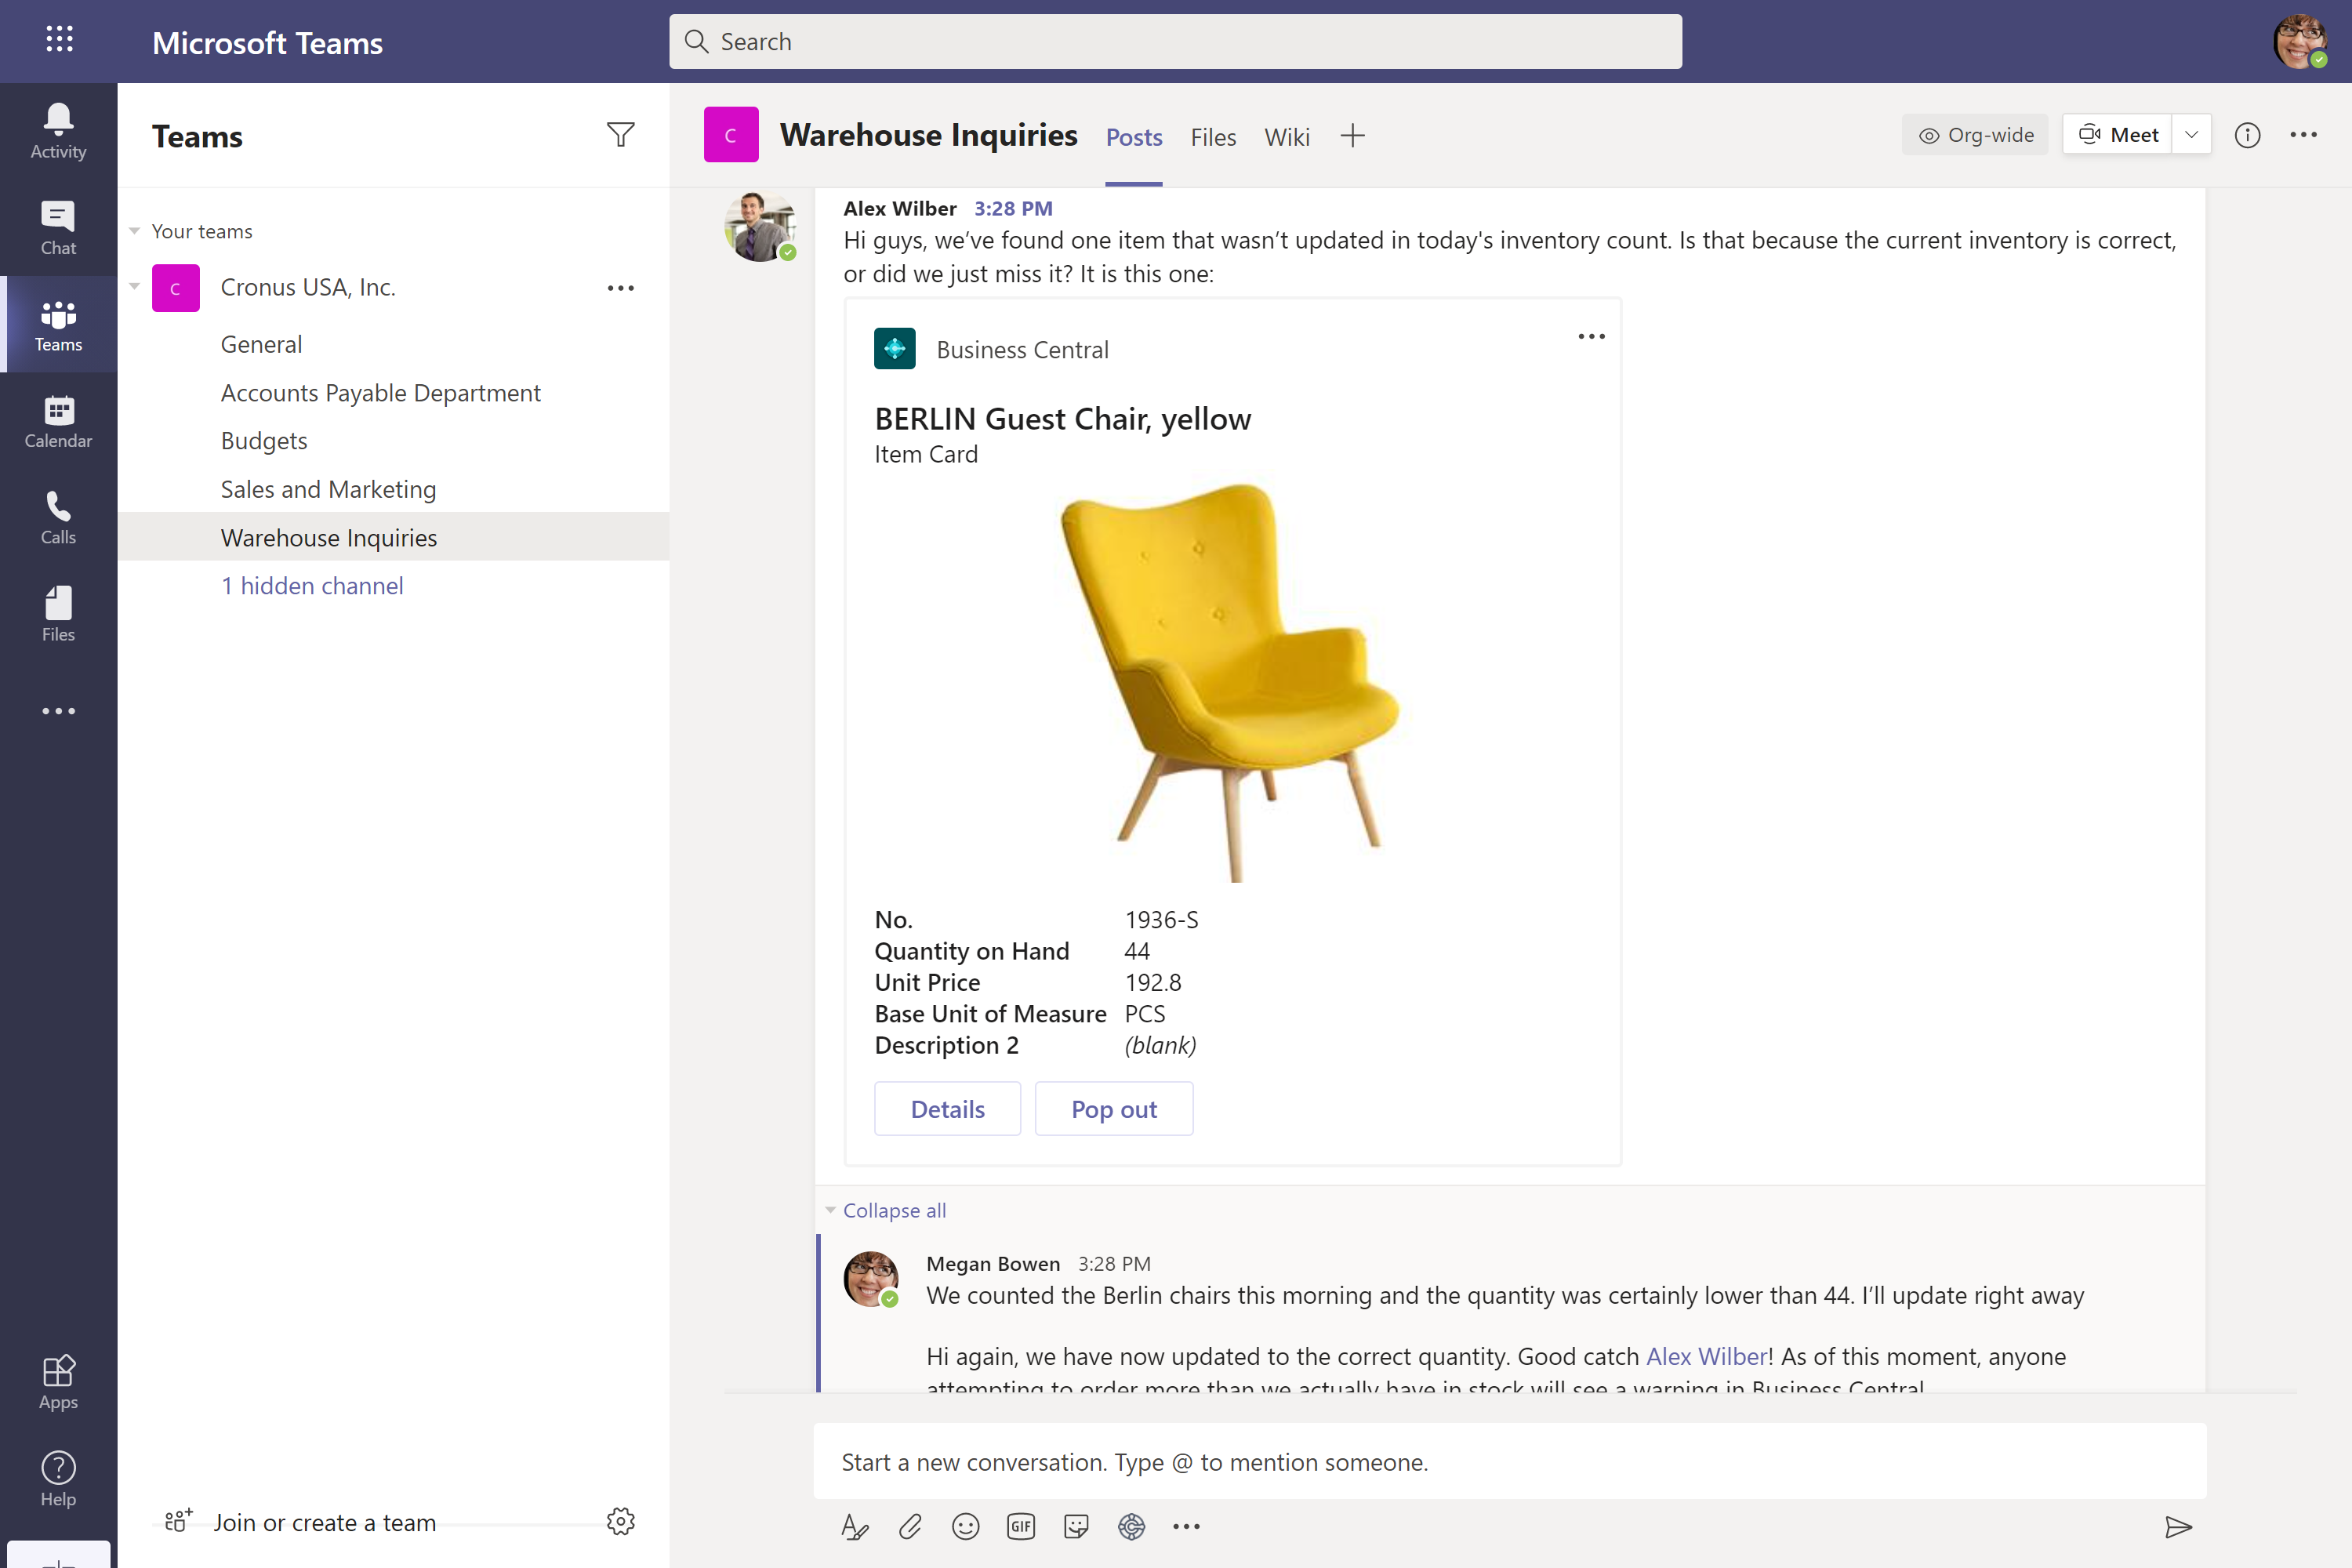 Conversation between coworkers in Microsoft Teams with business data as the topic of conversation